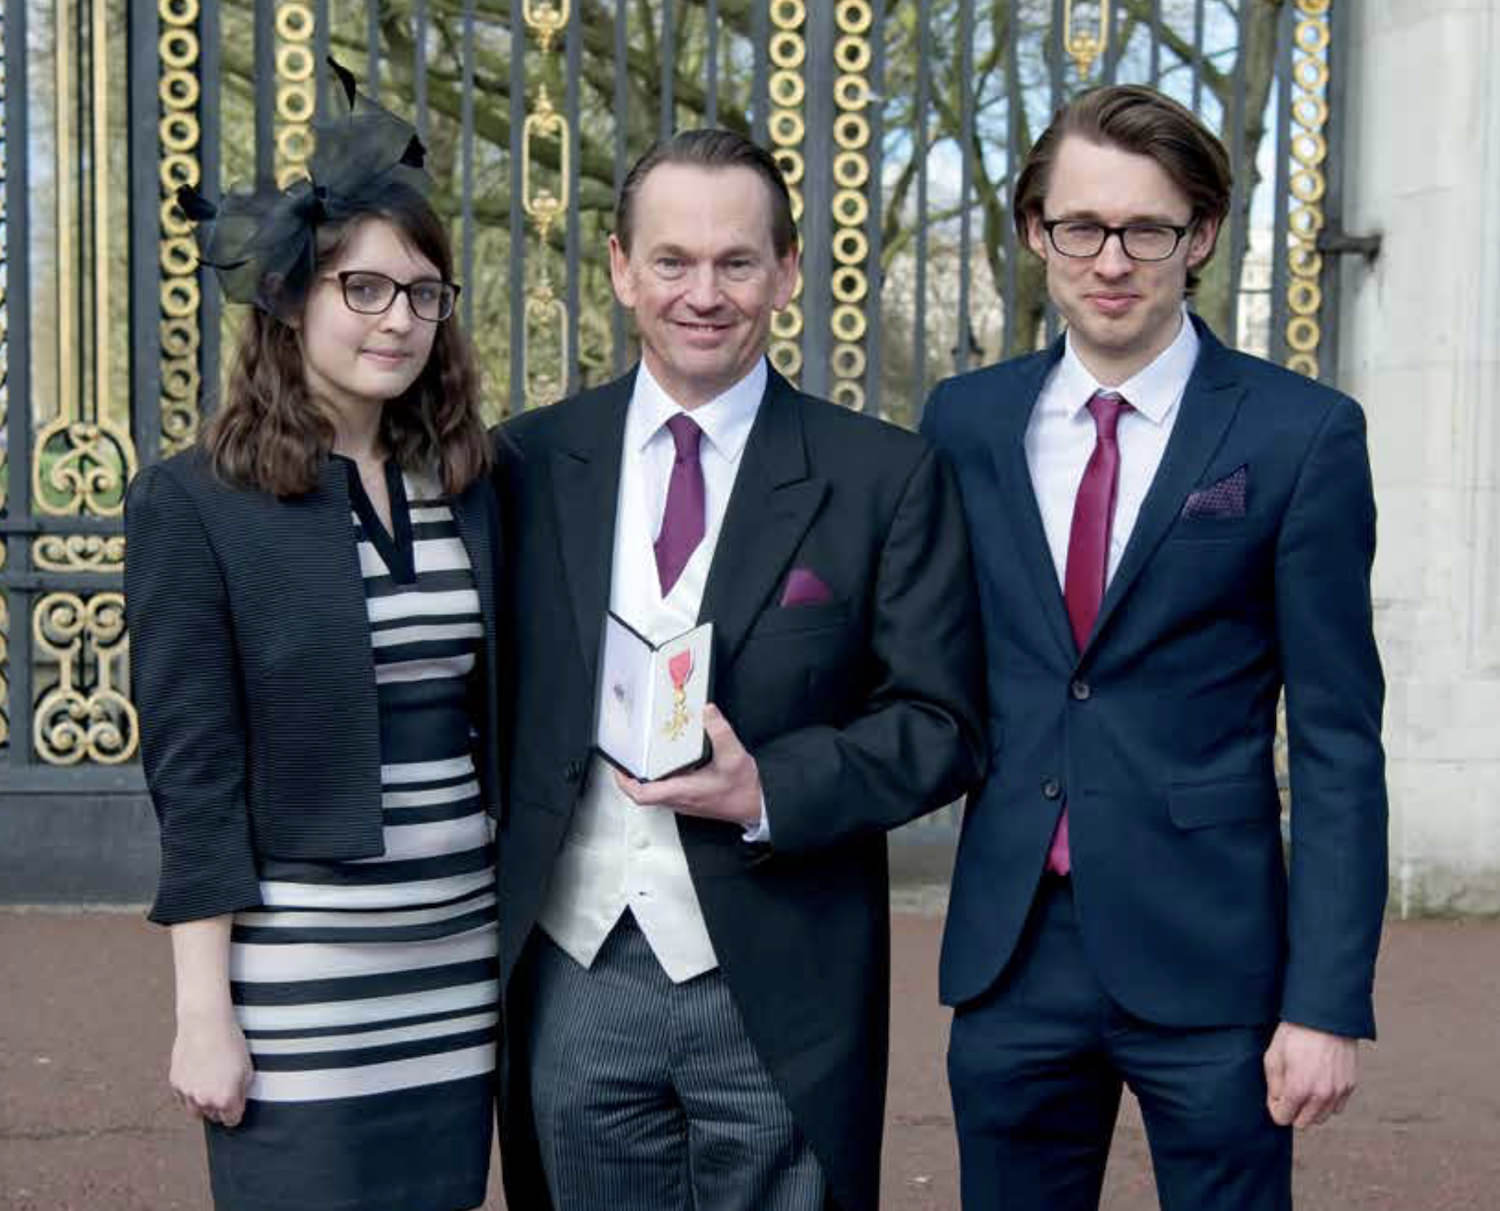 Former pupil Nick Linfield OBE, pictured here at Buckingham Palace with his children George and Molly, who also both attended West Sussex independent school, Sompting Abbotts Prep School. Like their father before them, they too are named on the school's scholarship Honours' Board